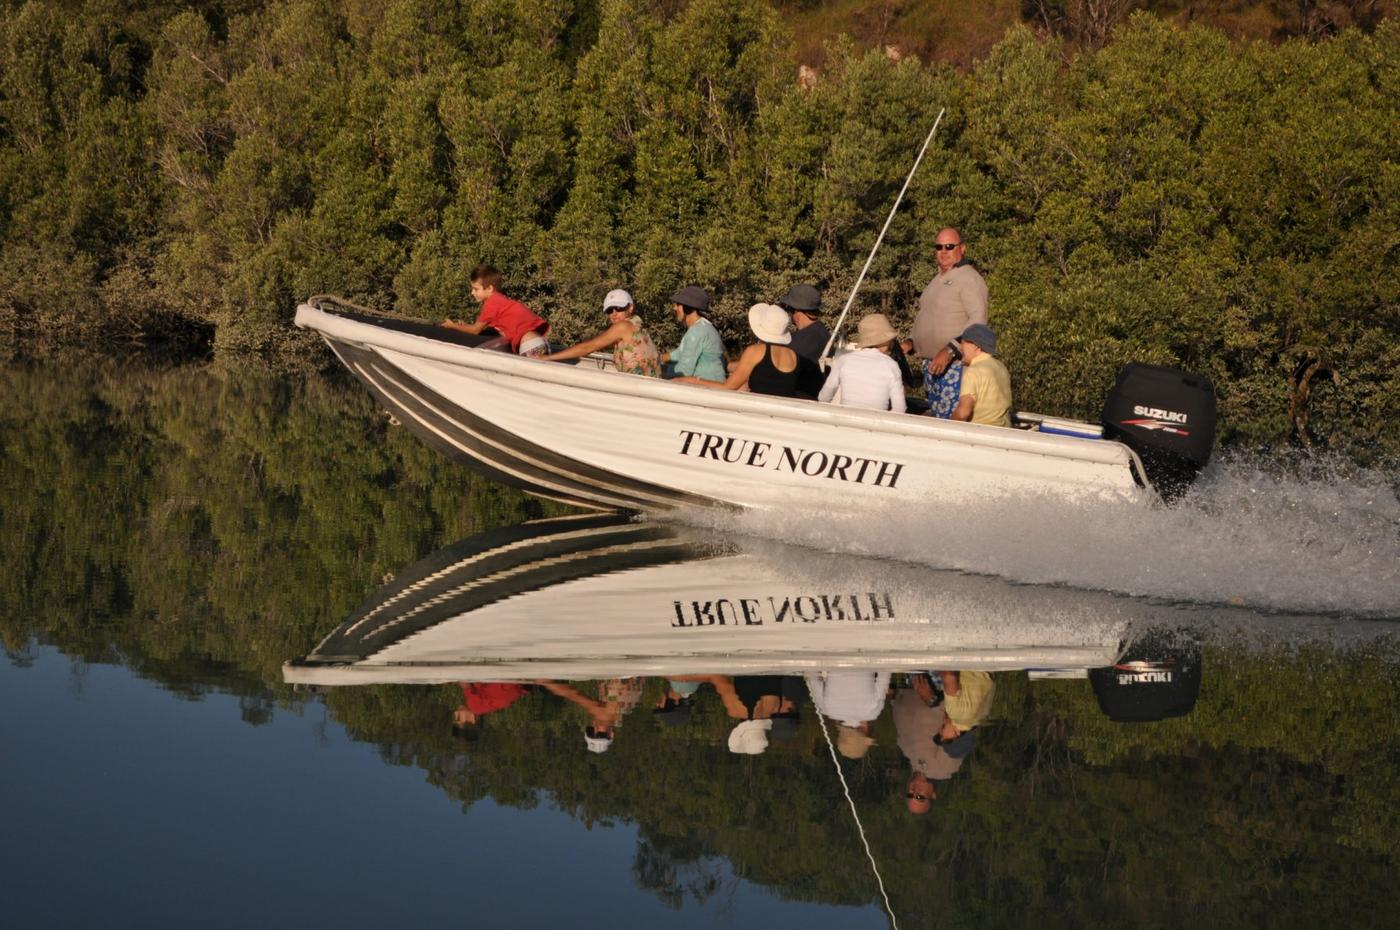 Excursion boat, True North